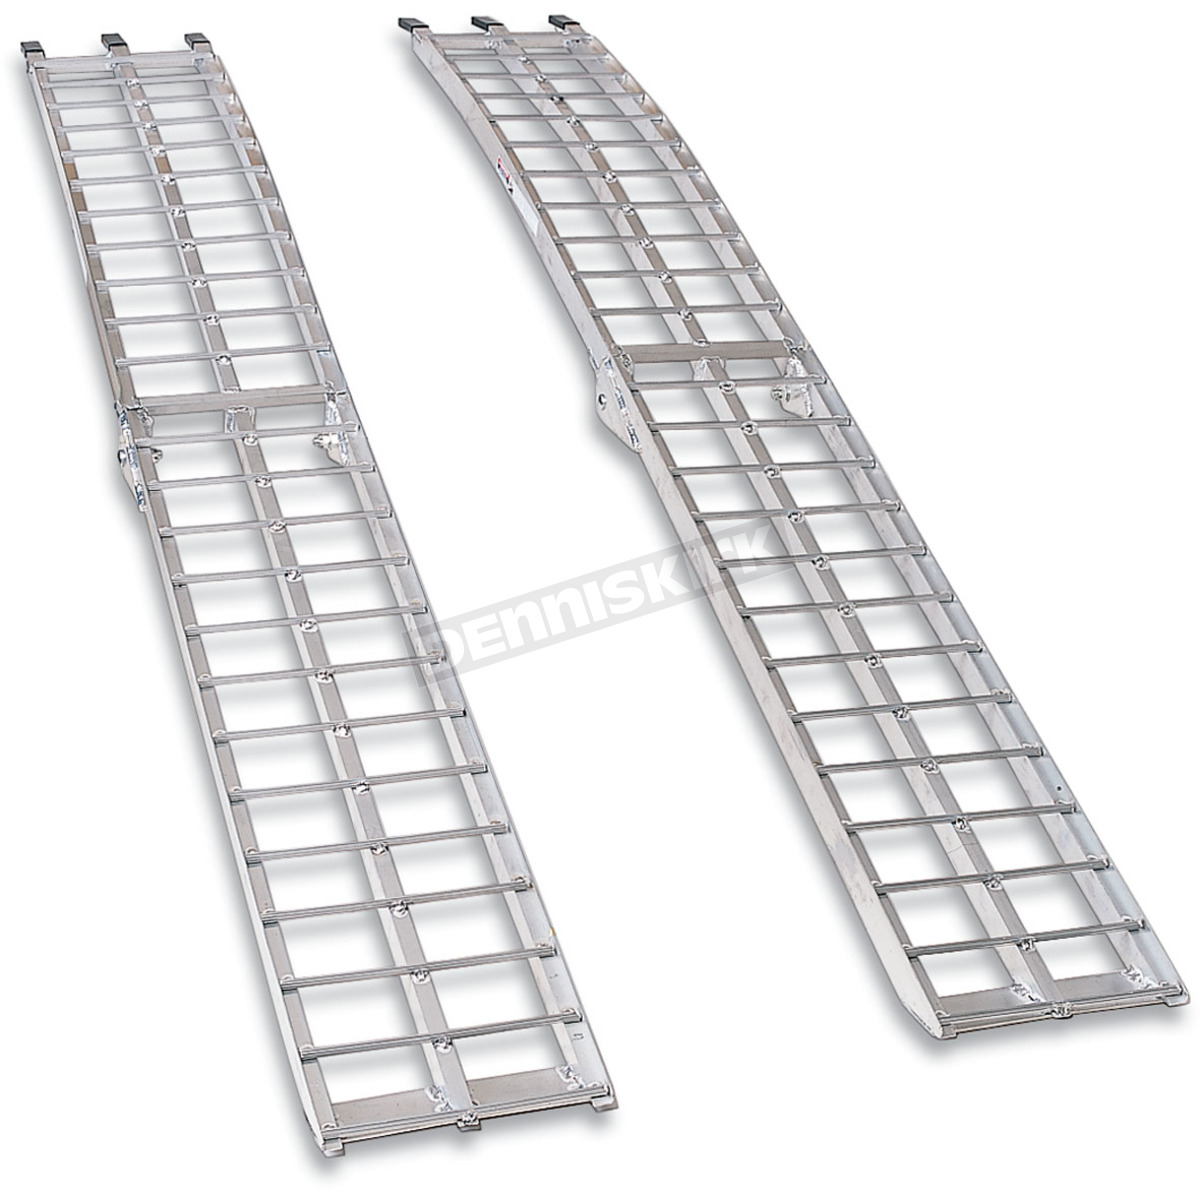 moose arched aluminum ramps loading zoom - Aluminum Ramps